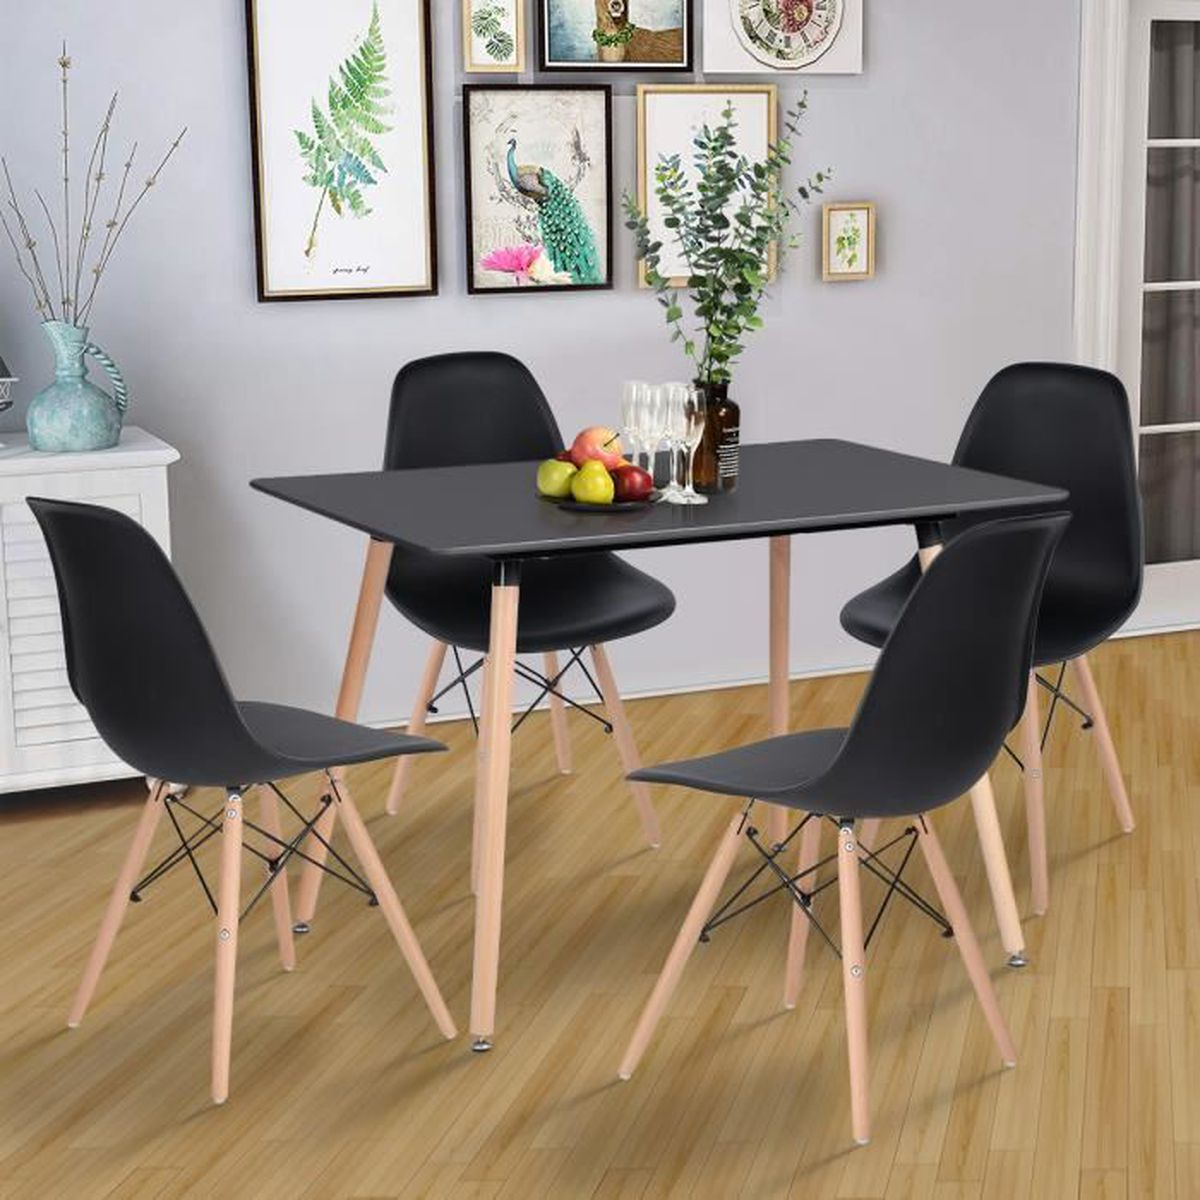 Table Ronde Et Chaise.Table Ronde 6 Chaises